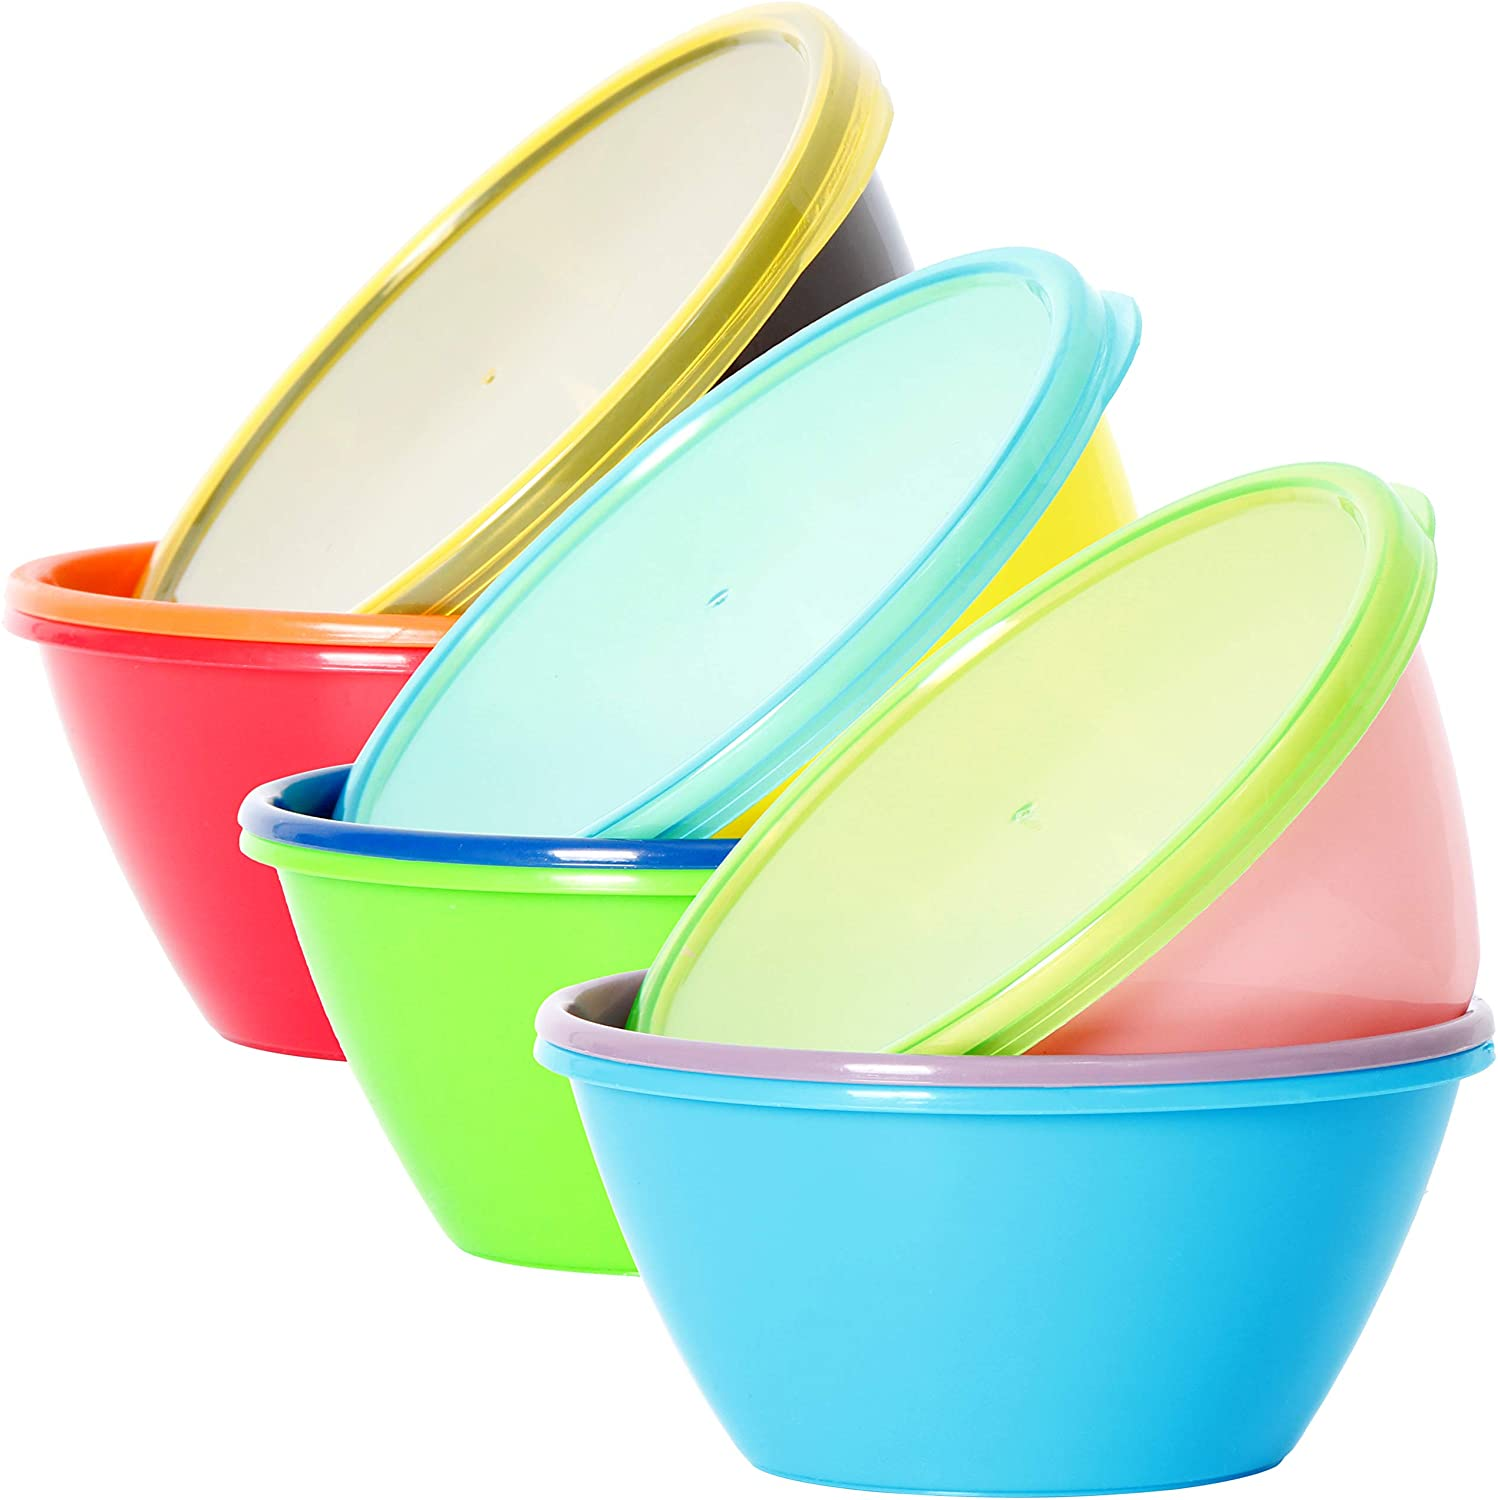 Youngever 12 Ounce Plastic Bowls with Lids, Snack Bowls, Small Bowls, Food Storage Containers, Microwave Safe, Dishwasher Safe, Set of 9 in 9 Assorted Colors